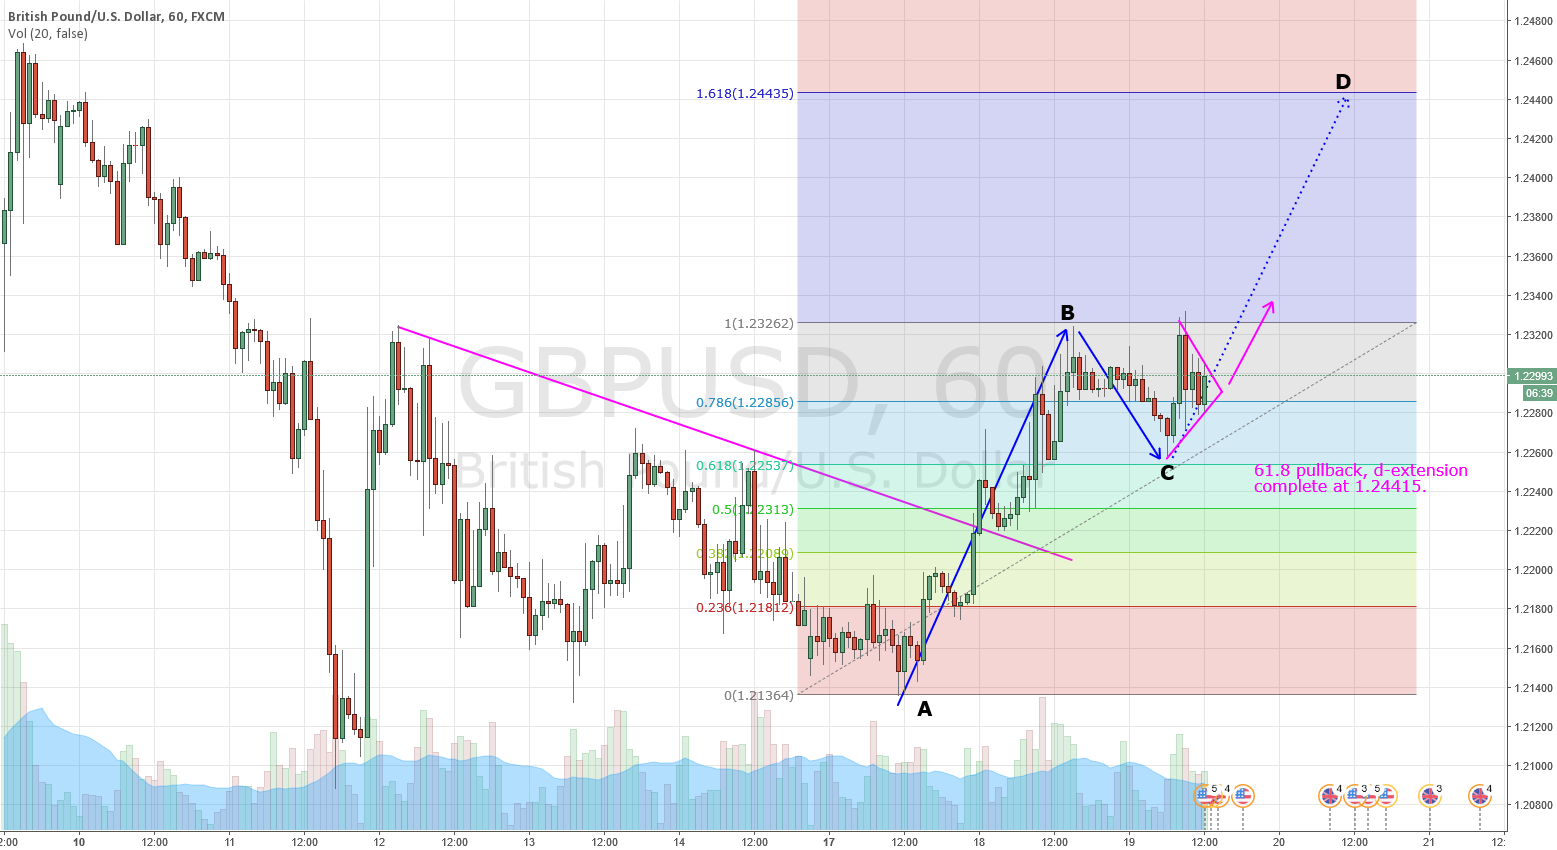 GBPUSD breakout pennant/flag structure?